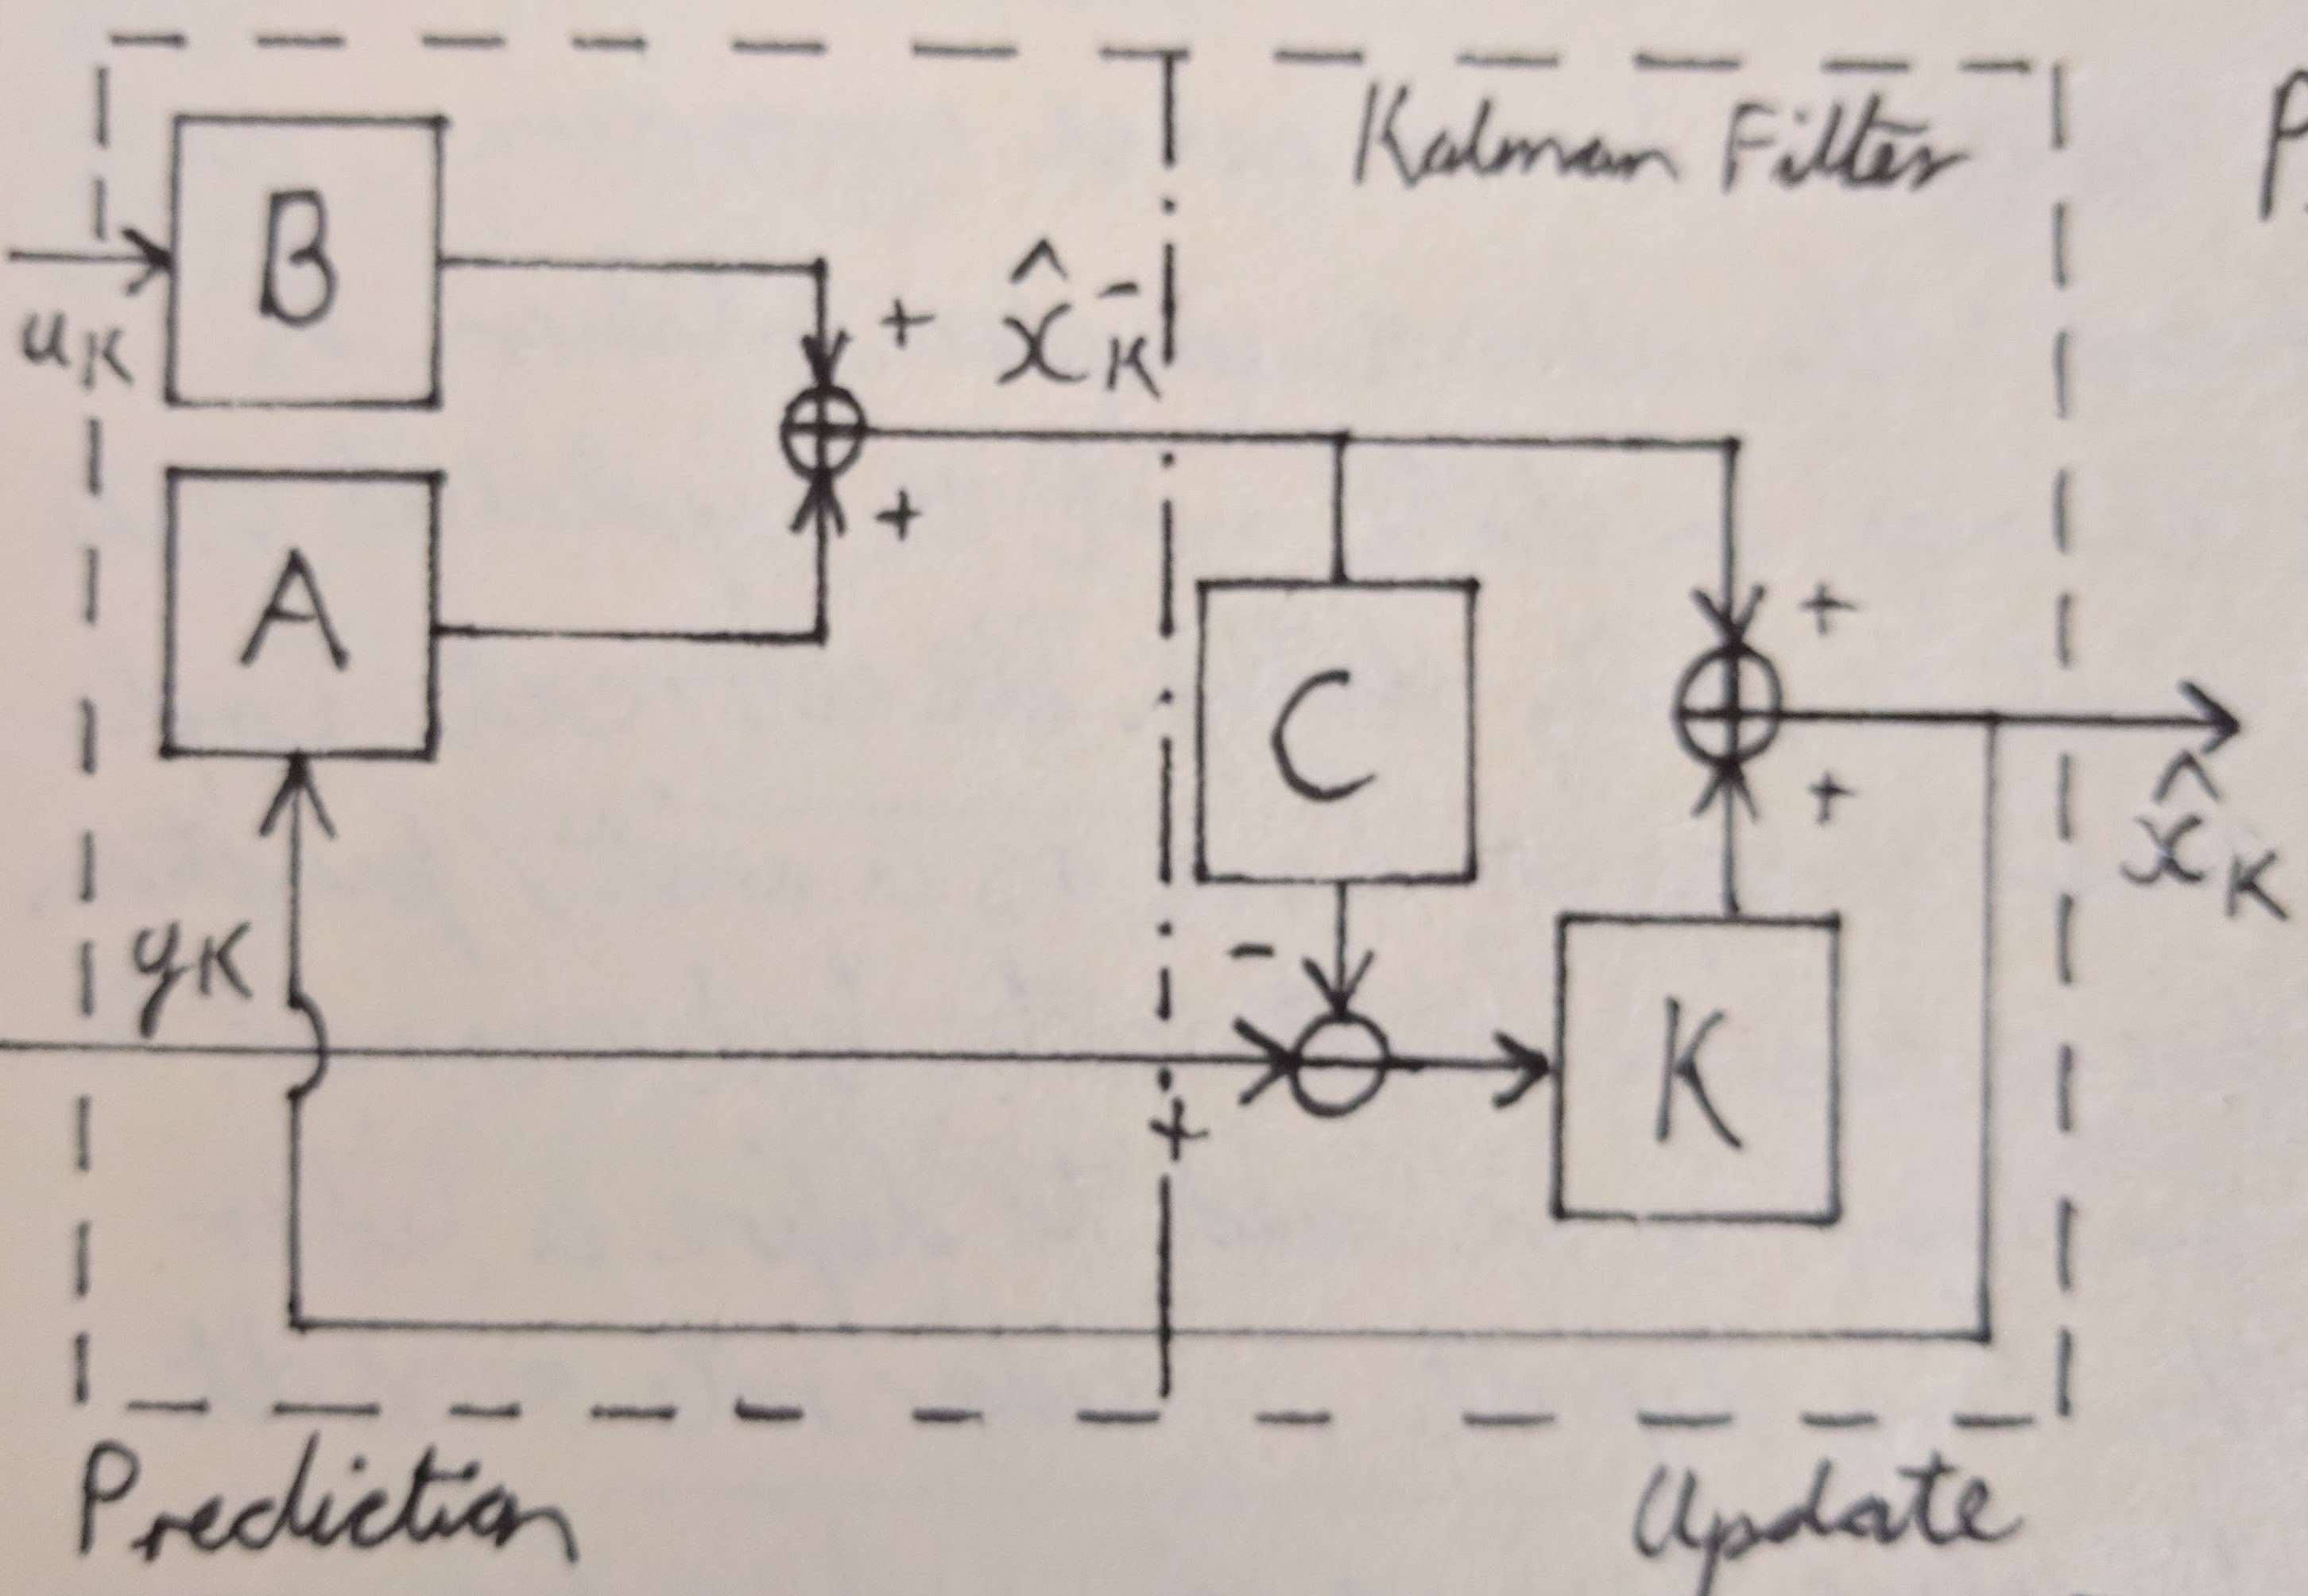 the kalman filter process is shown in equation form below the block diagram   the computation for the kalman gain k is left out of the block diagram but  is